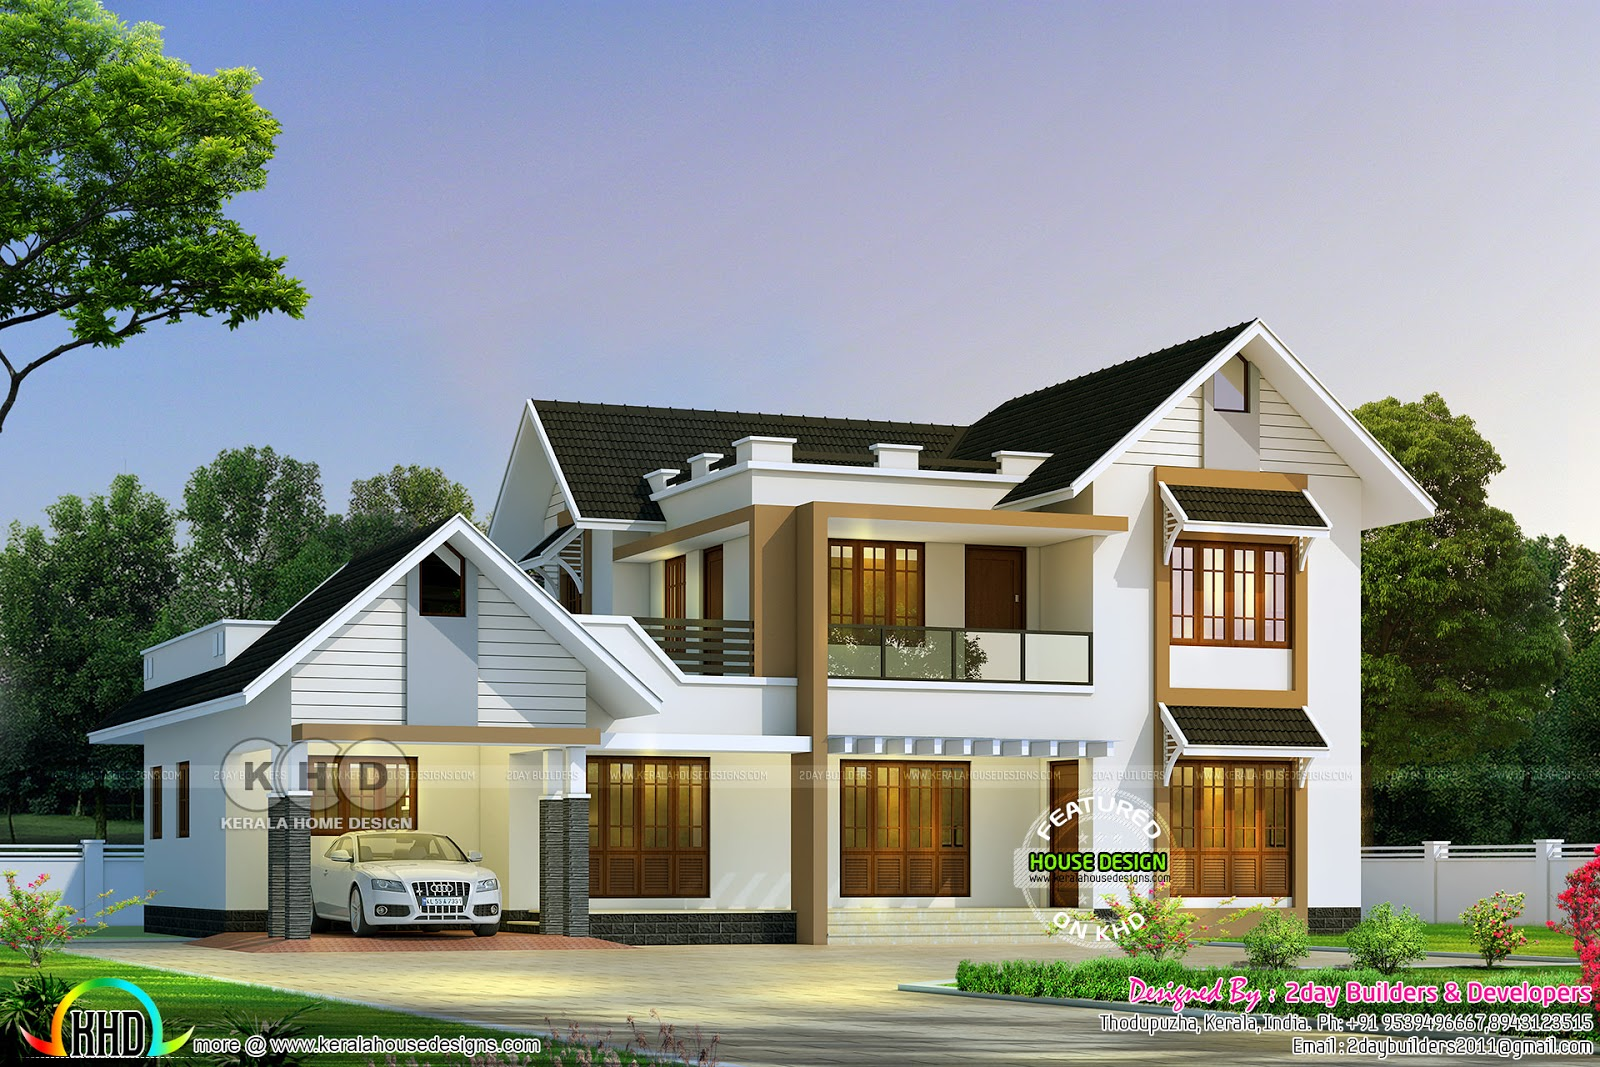 2017 kerala home design and floor plans for Www kerala house designs com